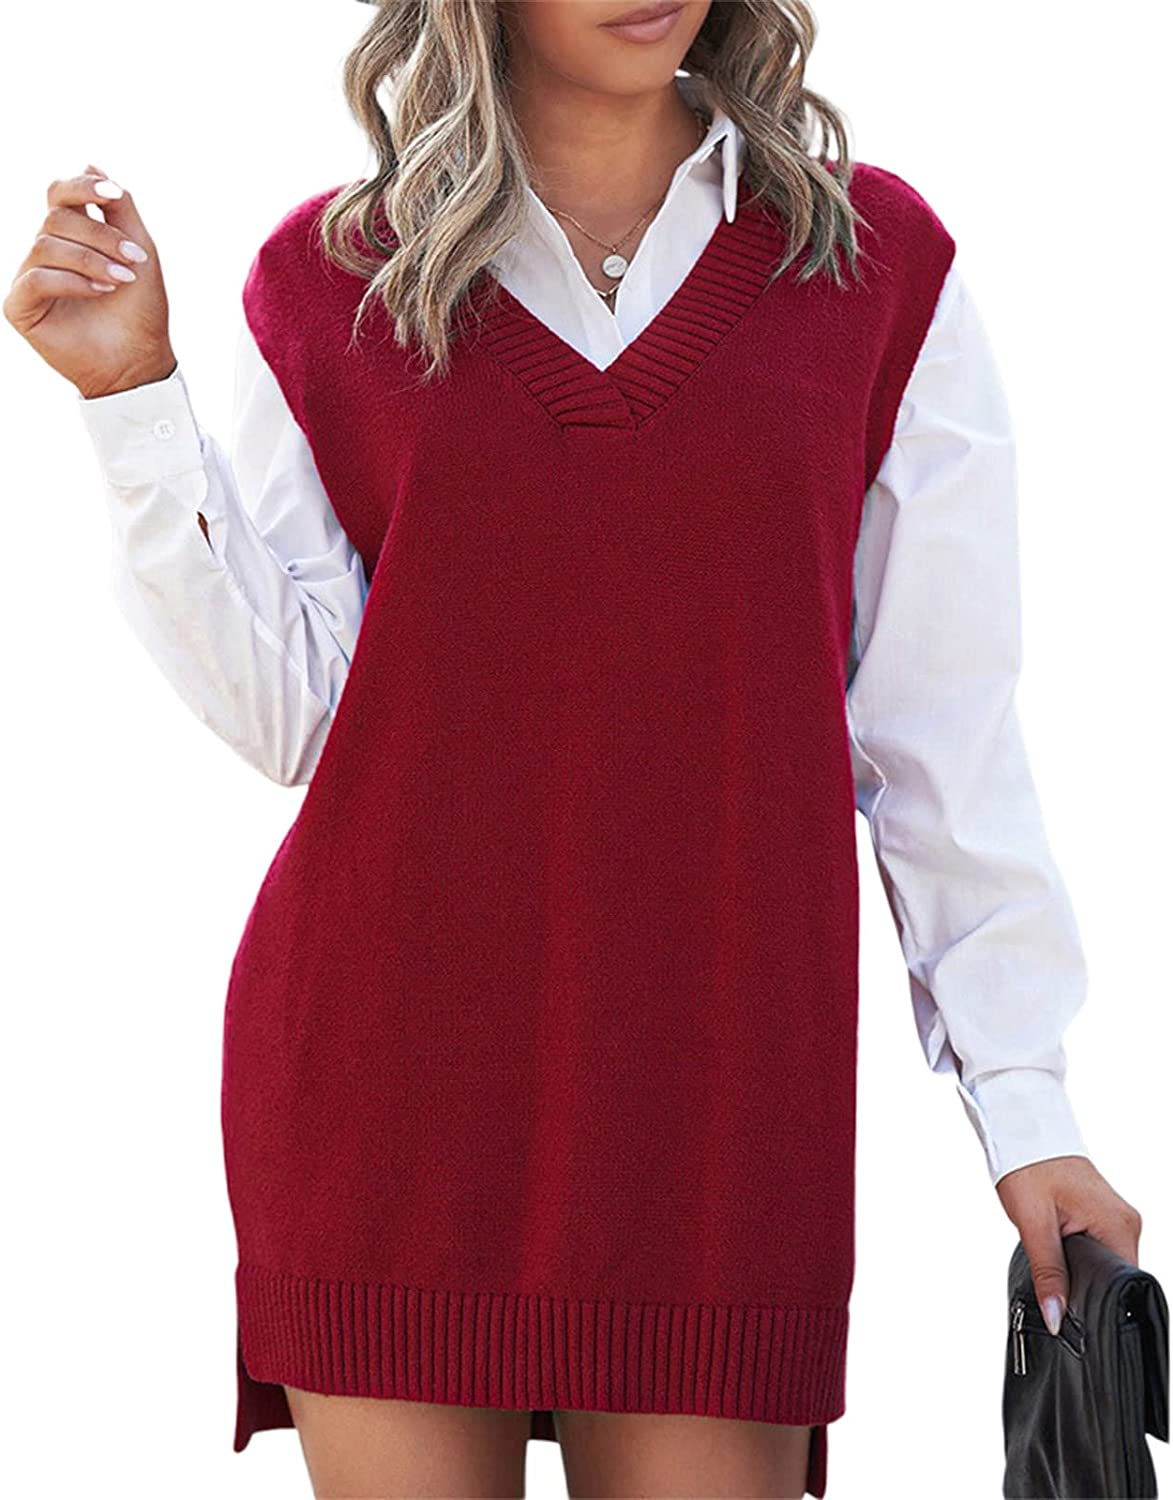 Women's Autumn Loose Fit V-Neck Knitted Sweater Vest Female Casual Solid Color Sleeveless Pullover Knitwear Tank